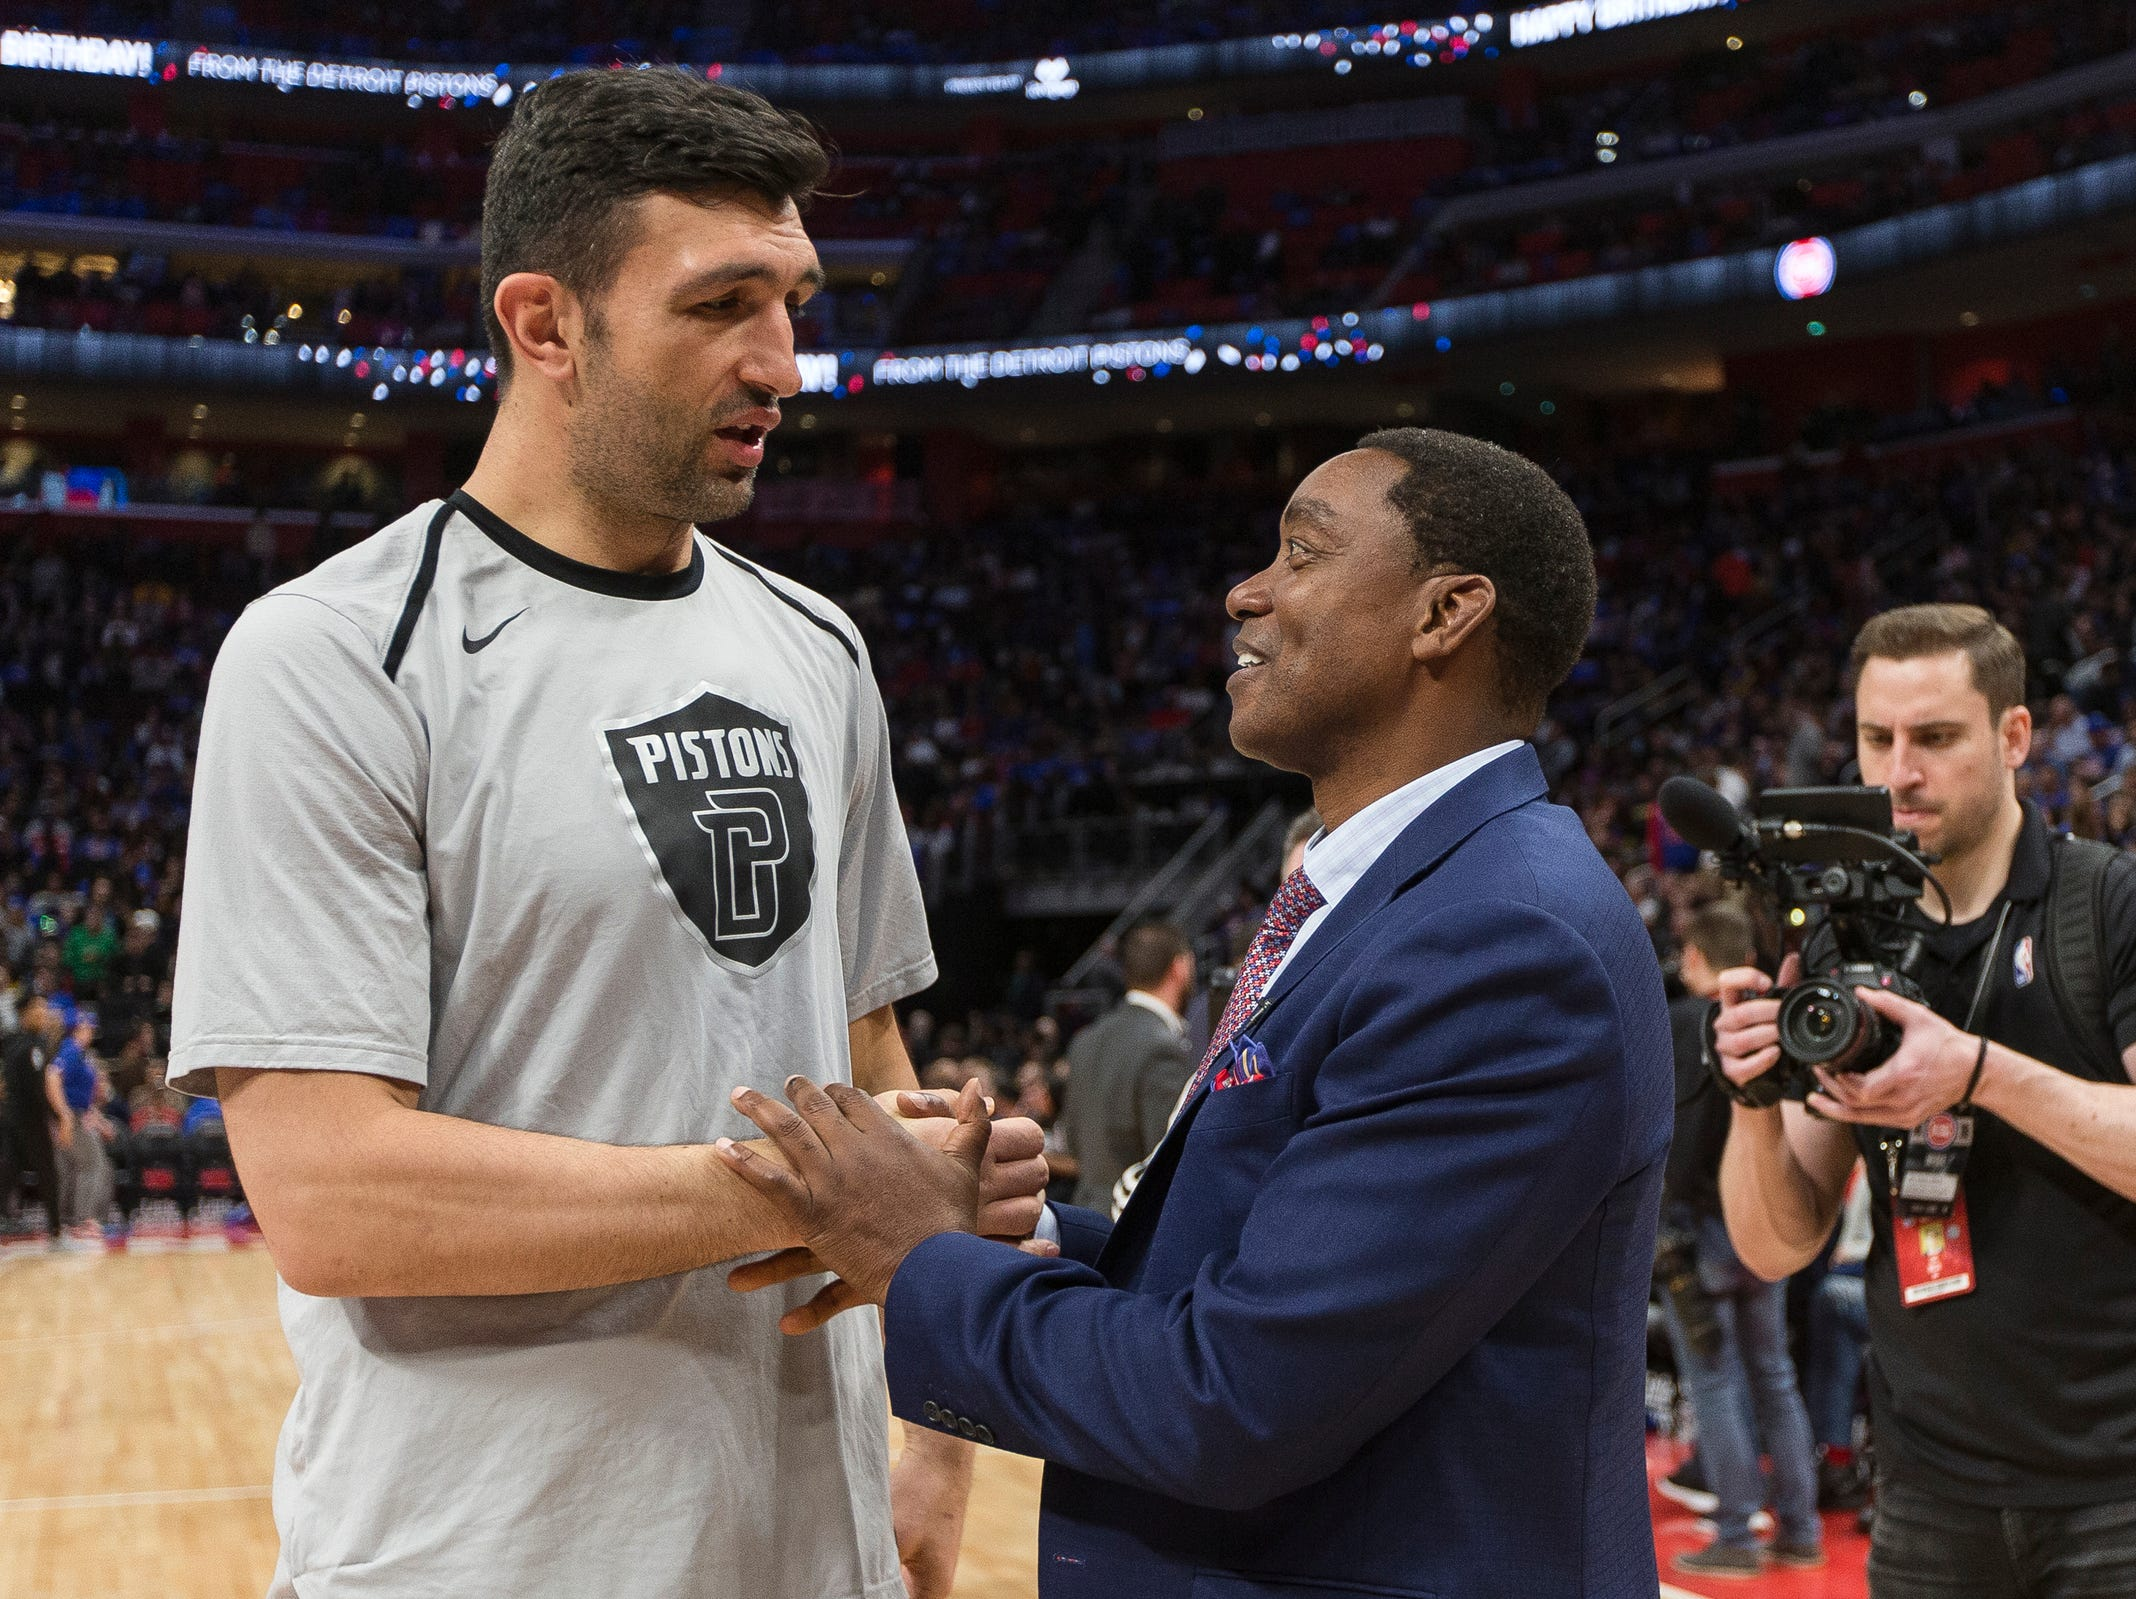 Isiah Thomas talks to center Zaza Pachulia during the celebration for the Bad Boys' 30th anniversary of the 1989-90 back-to-back championships during the Pistons' 99-90 win over the Trail Blazers on Saturday, March 30, 2019, at Little Caesars Arena.